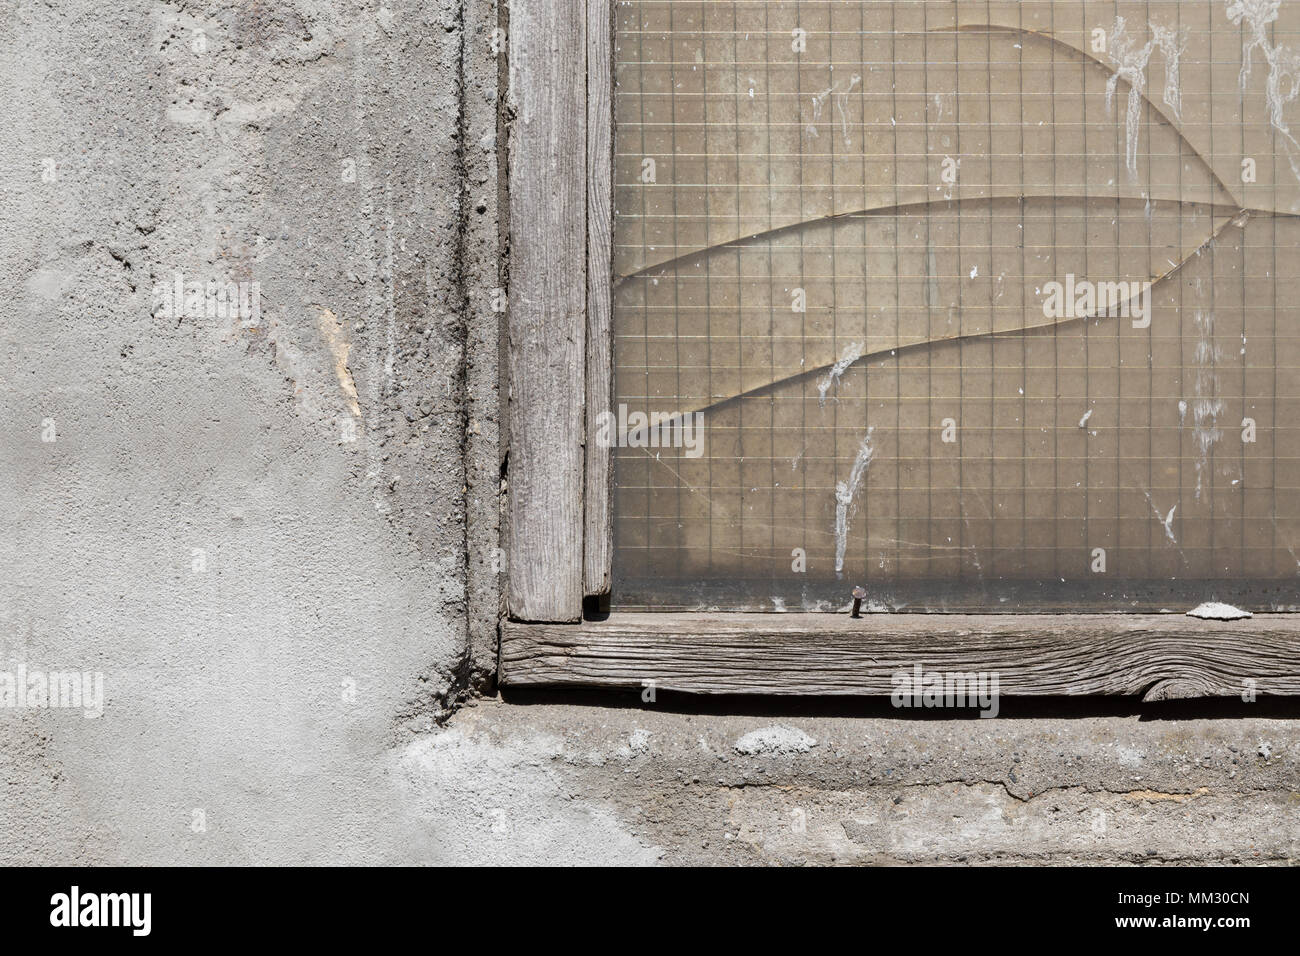 Concrete wall, wood-framed window with cracked wire mesh glass; Copenhagen Harbor, Denmark - Stock Image